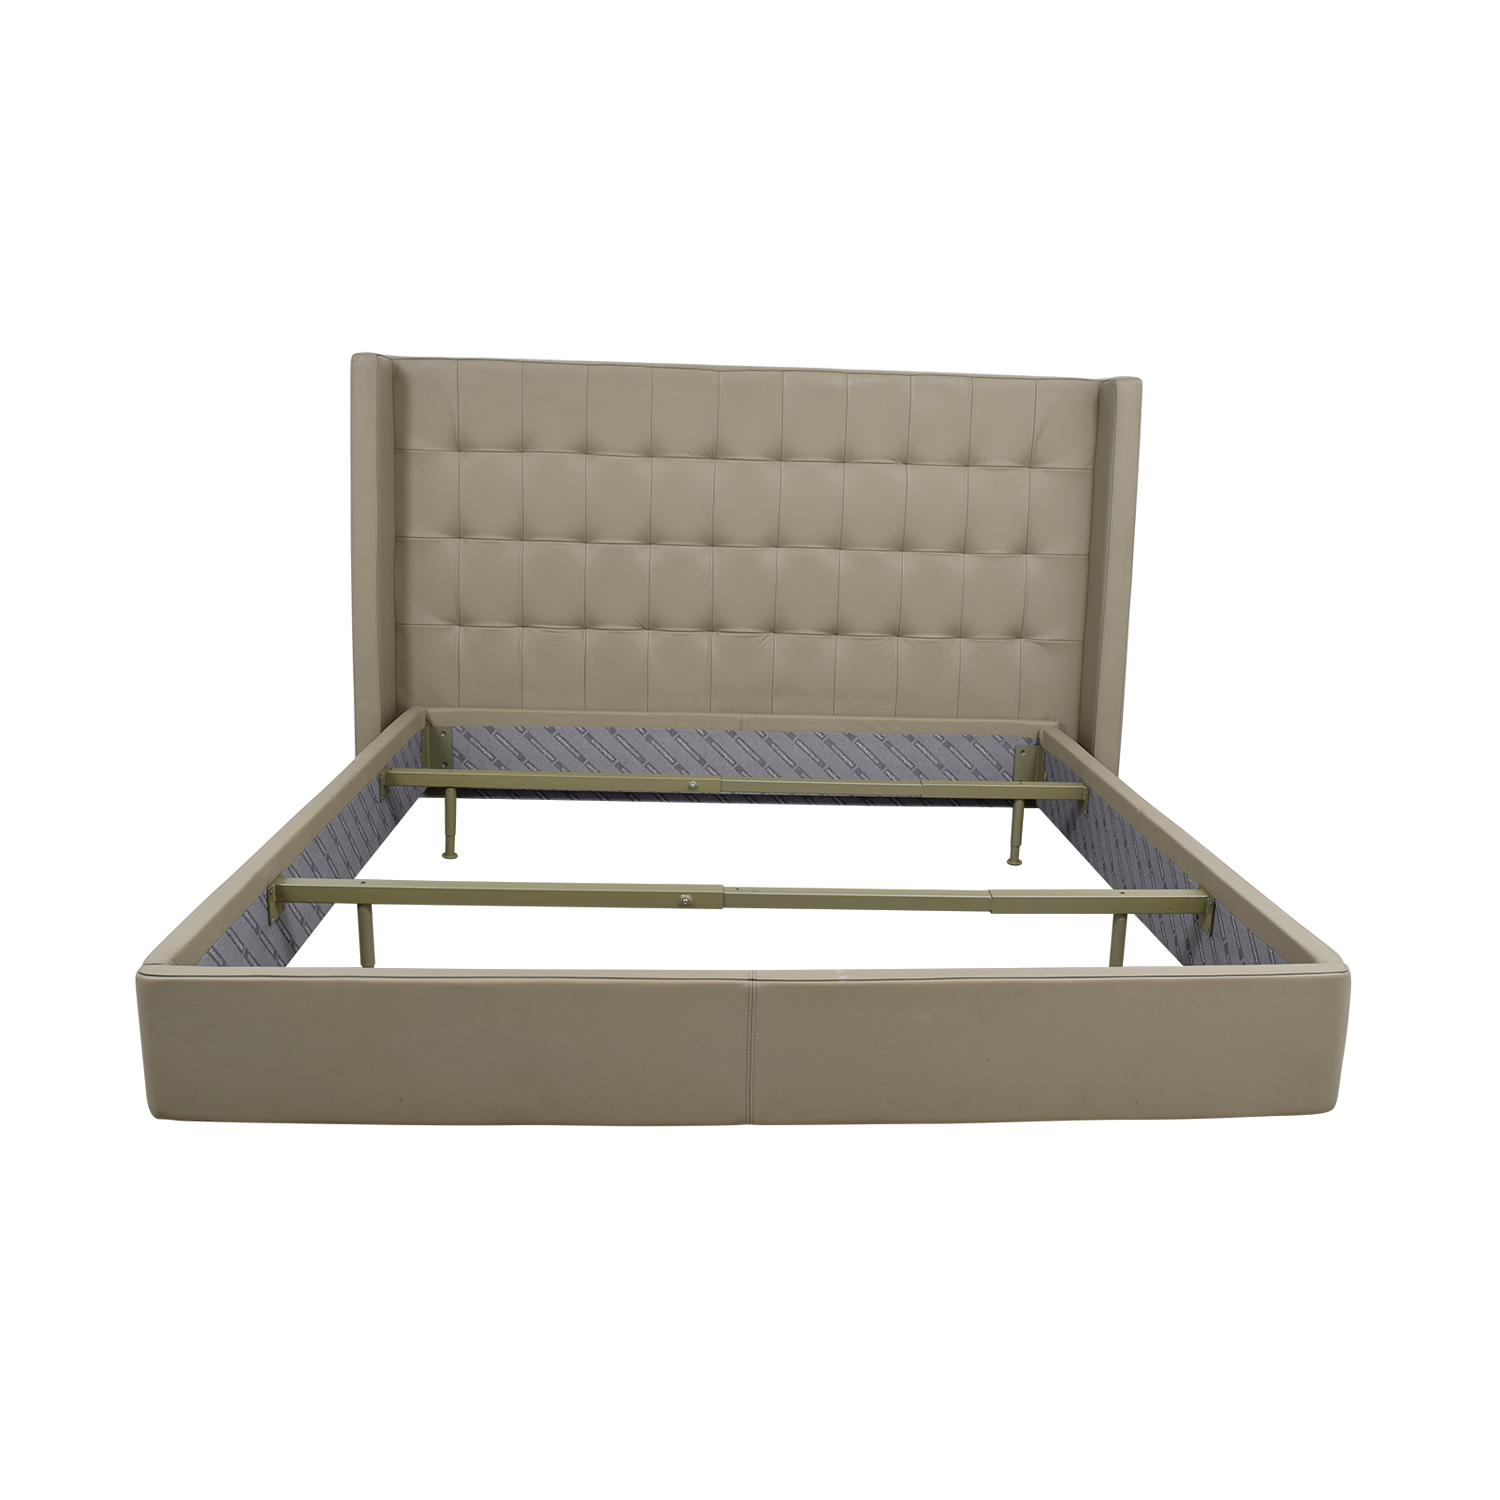 Roche Bobois Roche Bobois King Beige Tufted Leather Bed Frame nj